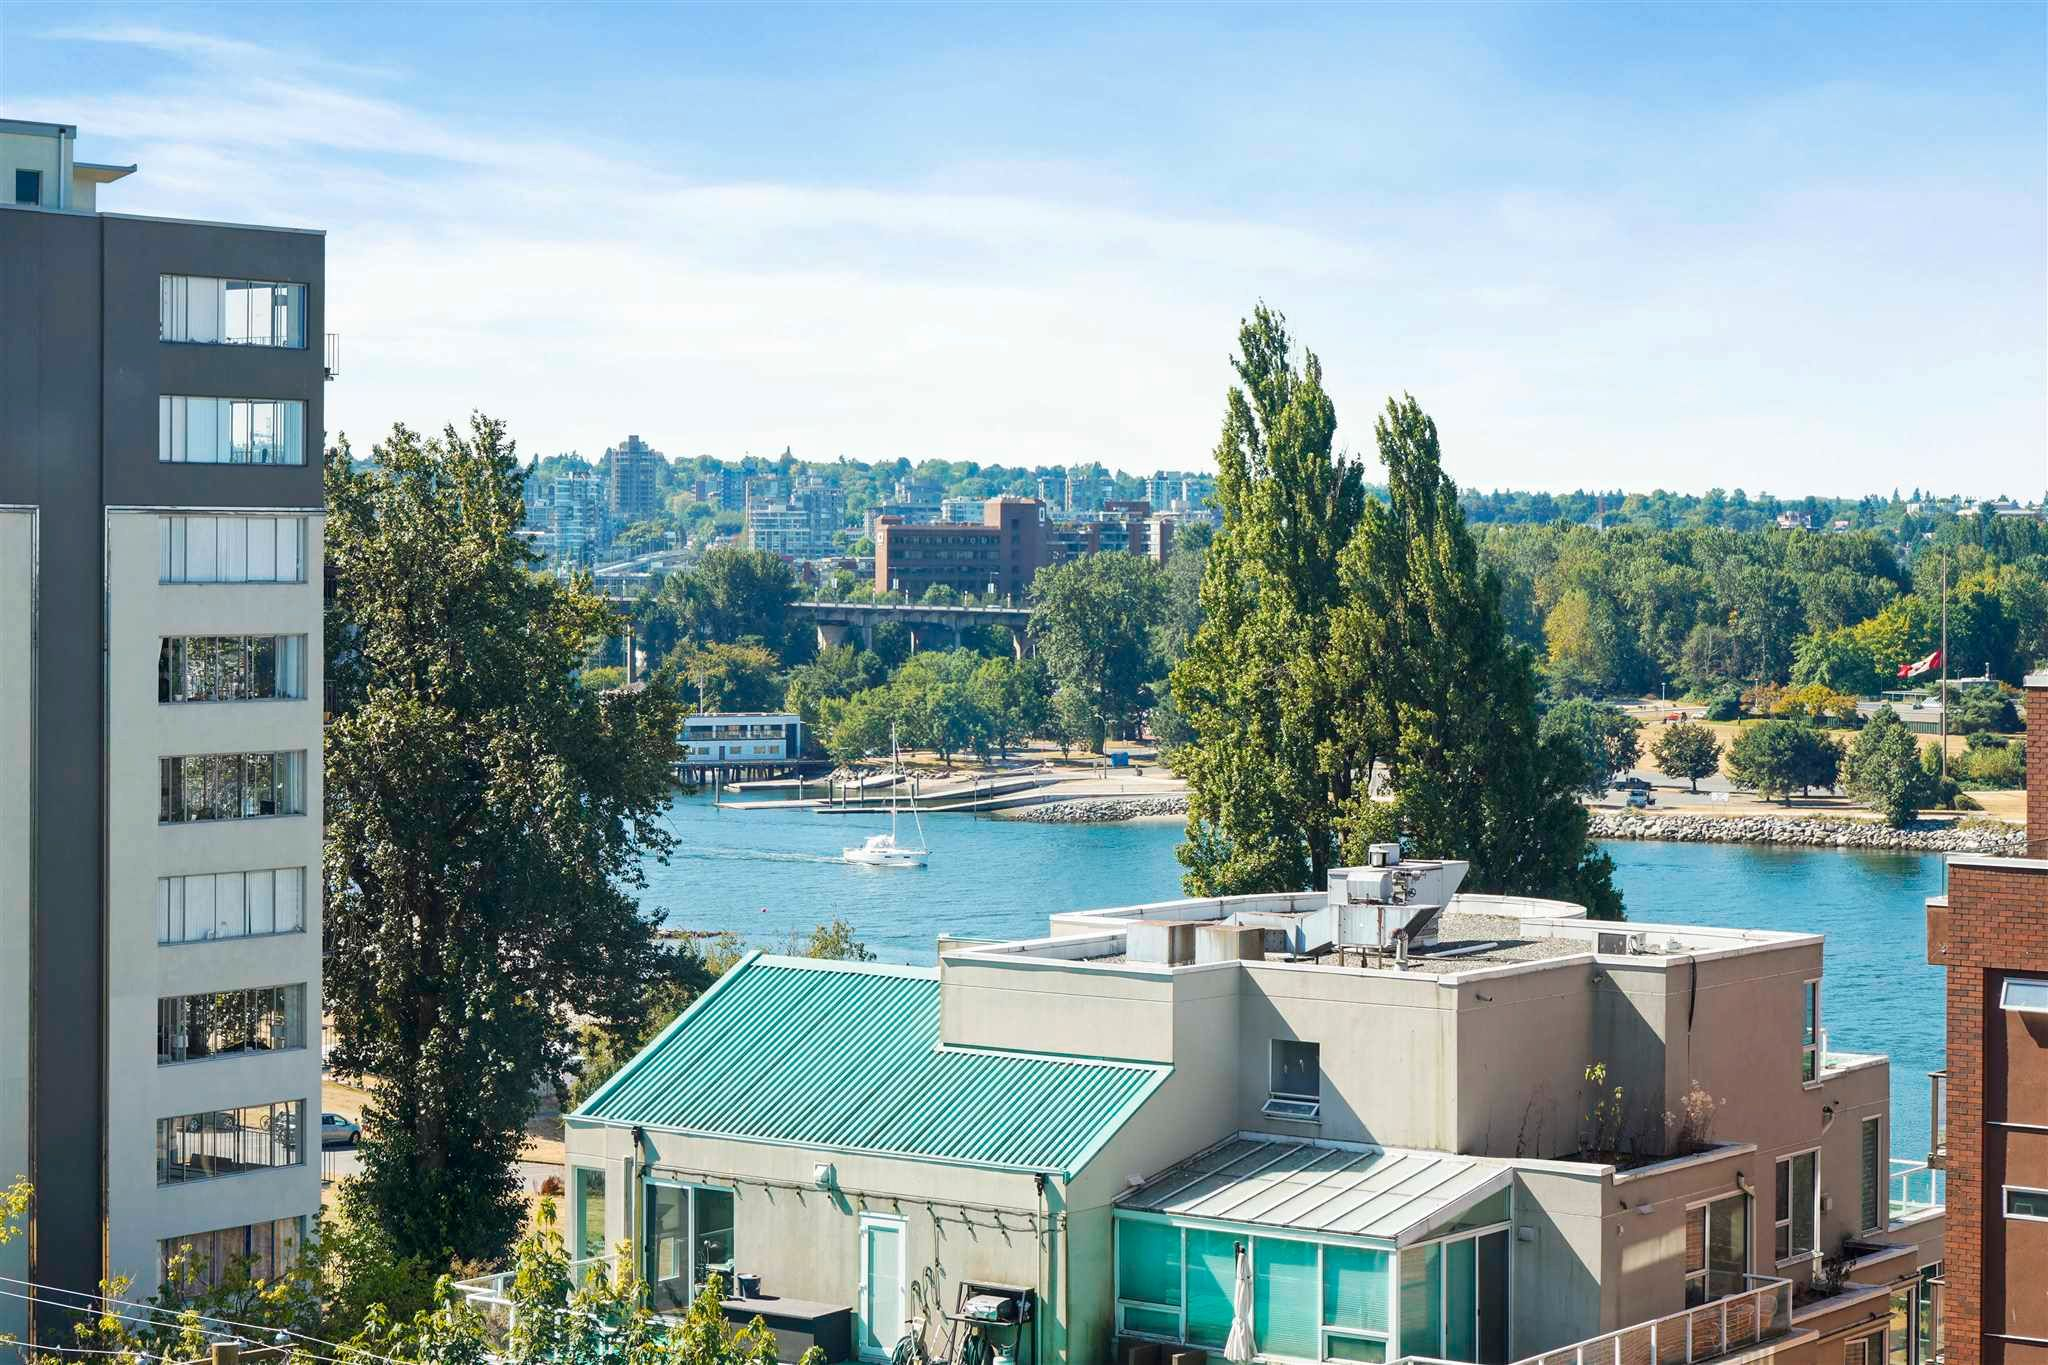 """Main Photo: 701 1436 HARWOOD Street in Vancouver: West End VW Condo for sale in """"HARWOOD HOUSE"""" (Vancouver West)  : MLS®# R2606000"""